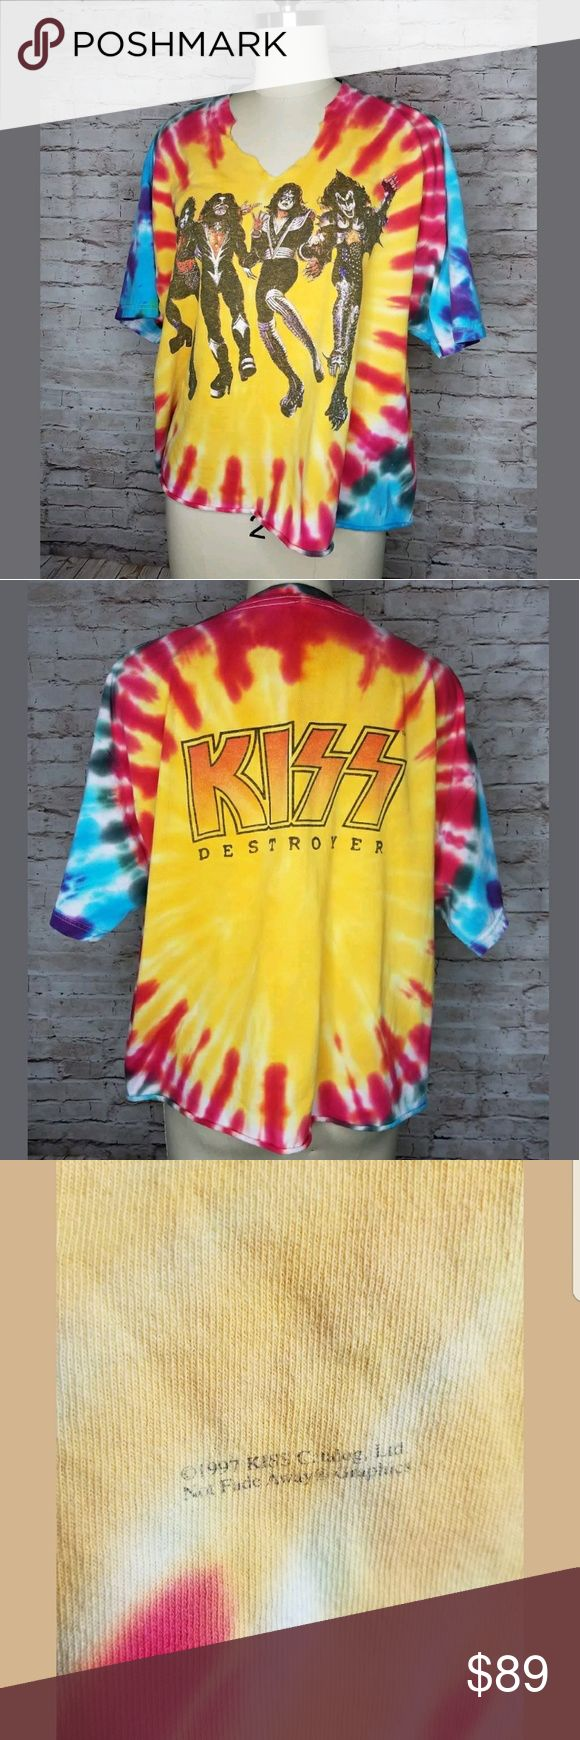 KISS Destroyer Tie Dye T-Shirt 1997 Album Cover Up for consideration is  a pre-owned vintage 90s tie-dye Kiss Destroyer band T. This top has had the collar cut into a v neck shape , and the bottom hem appears to have been cut off as well and is now unfinished. Top is in great overall condition, no size tag  , showing signs of normal wear. Lots of life left !!  Pit to pit approx 23in Shoulder to hem approx 21in Sleeve length approx 8in Pit to hem approx 10in  /ID/E unknown Tops Tees - Short…